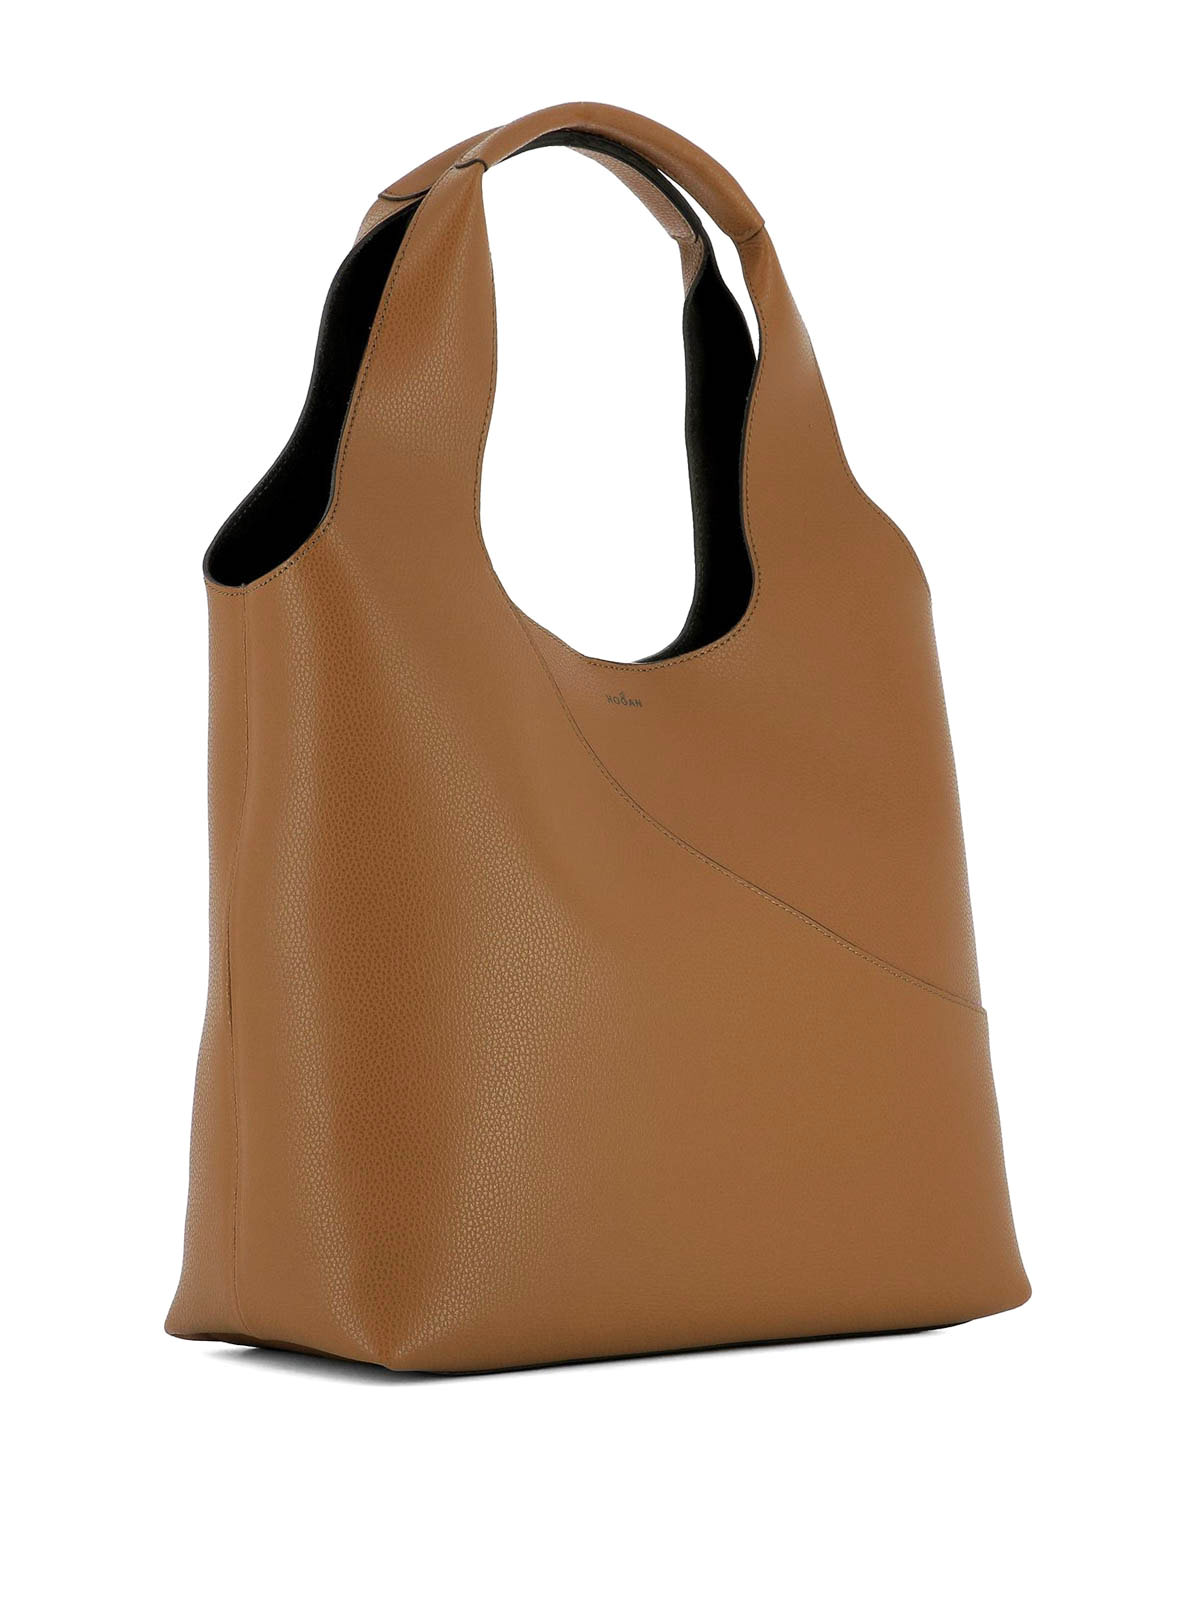 HOGAN  shoulder bags online - Smooth brown leather shoulder bag e4496d12de0